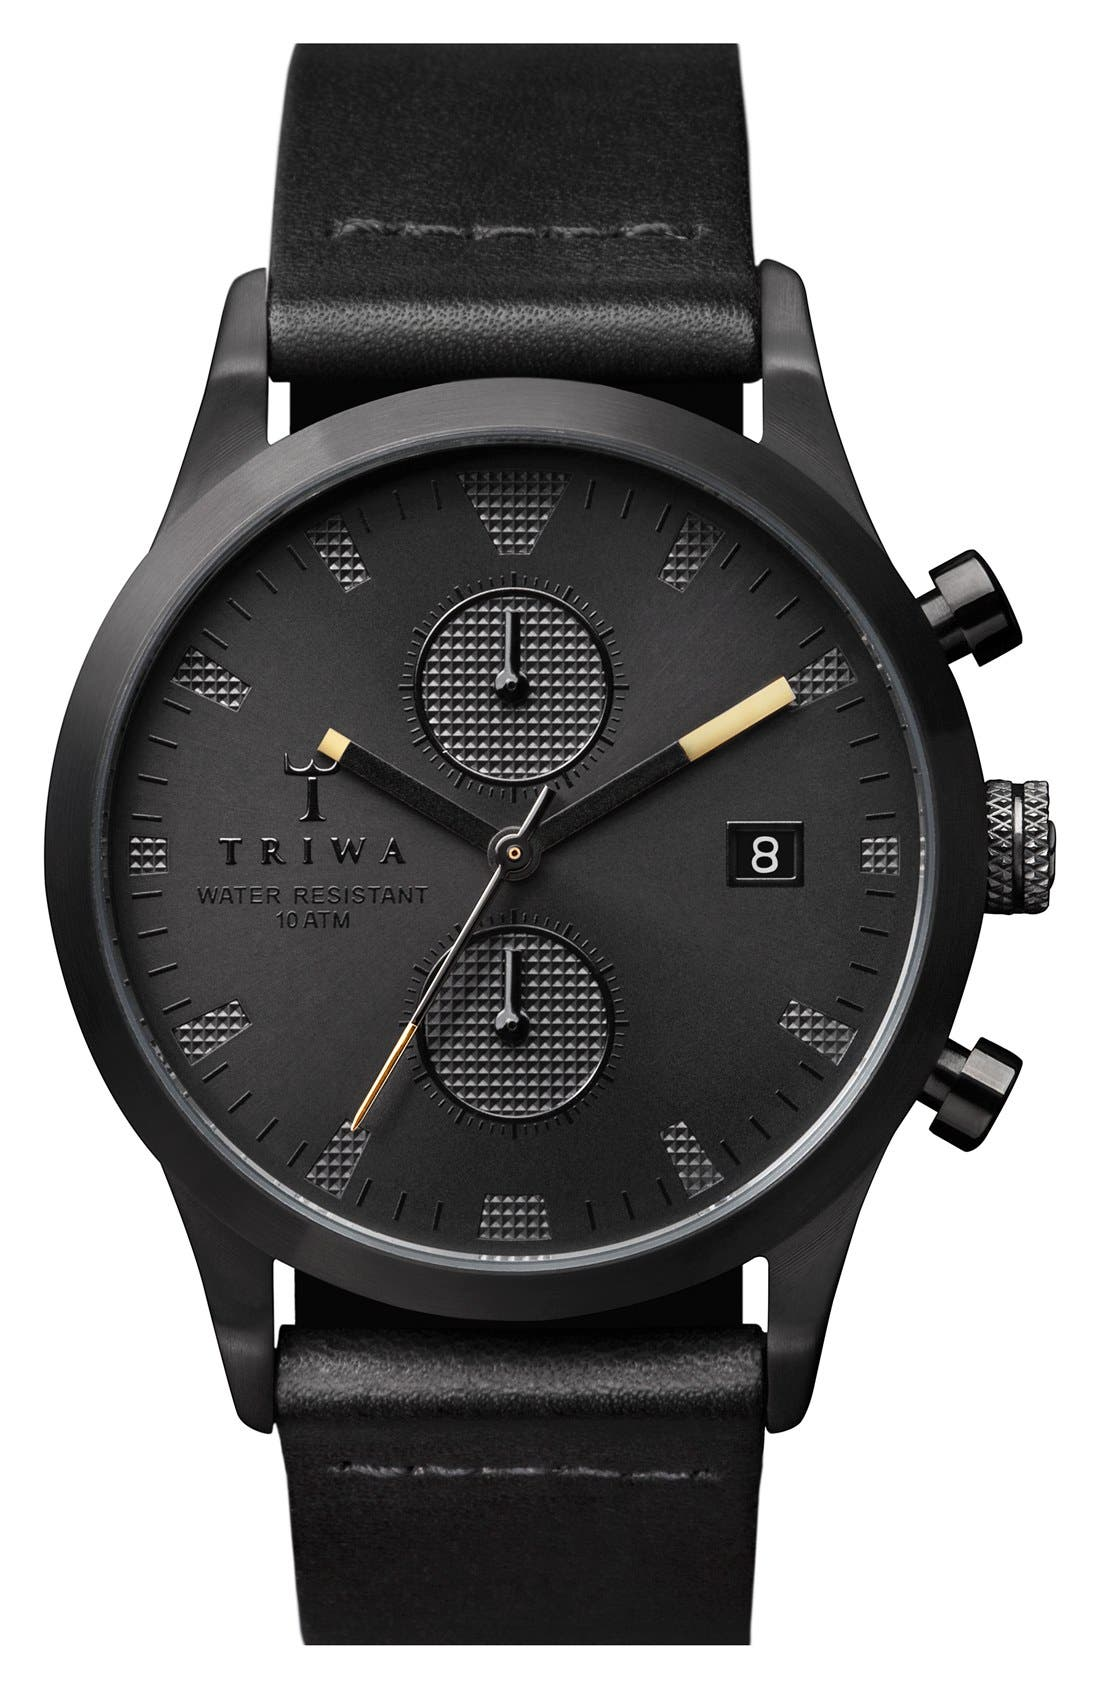 TRIWA Sort of Black Chronograph Leather Strap Watch, 38mm